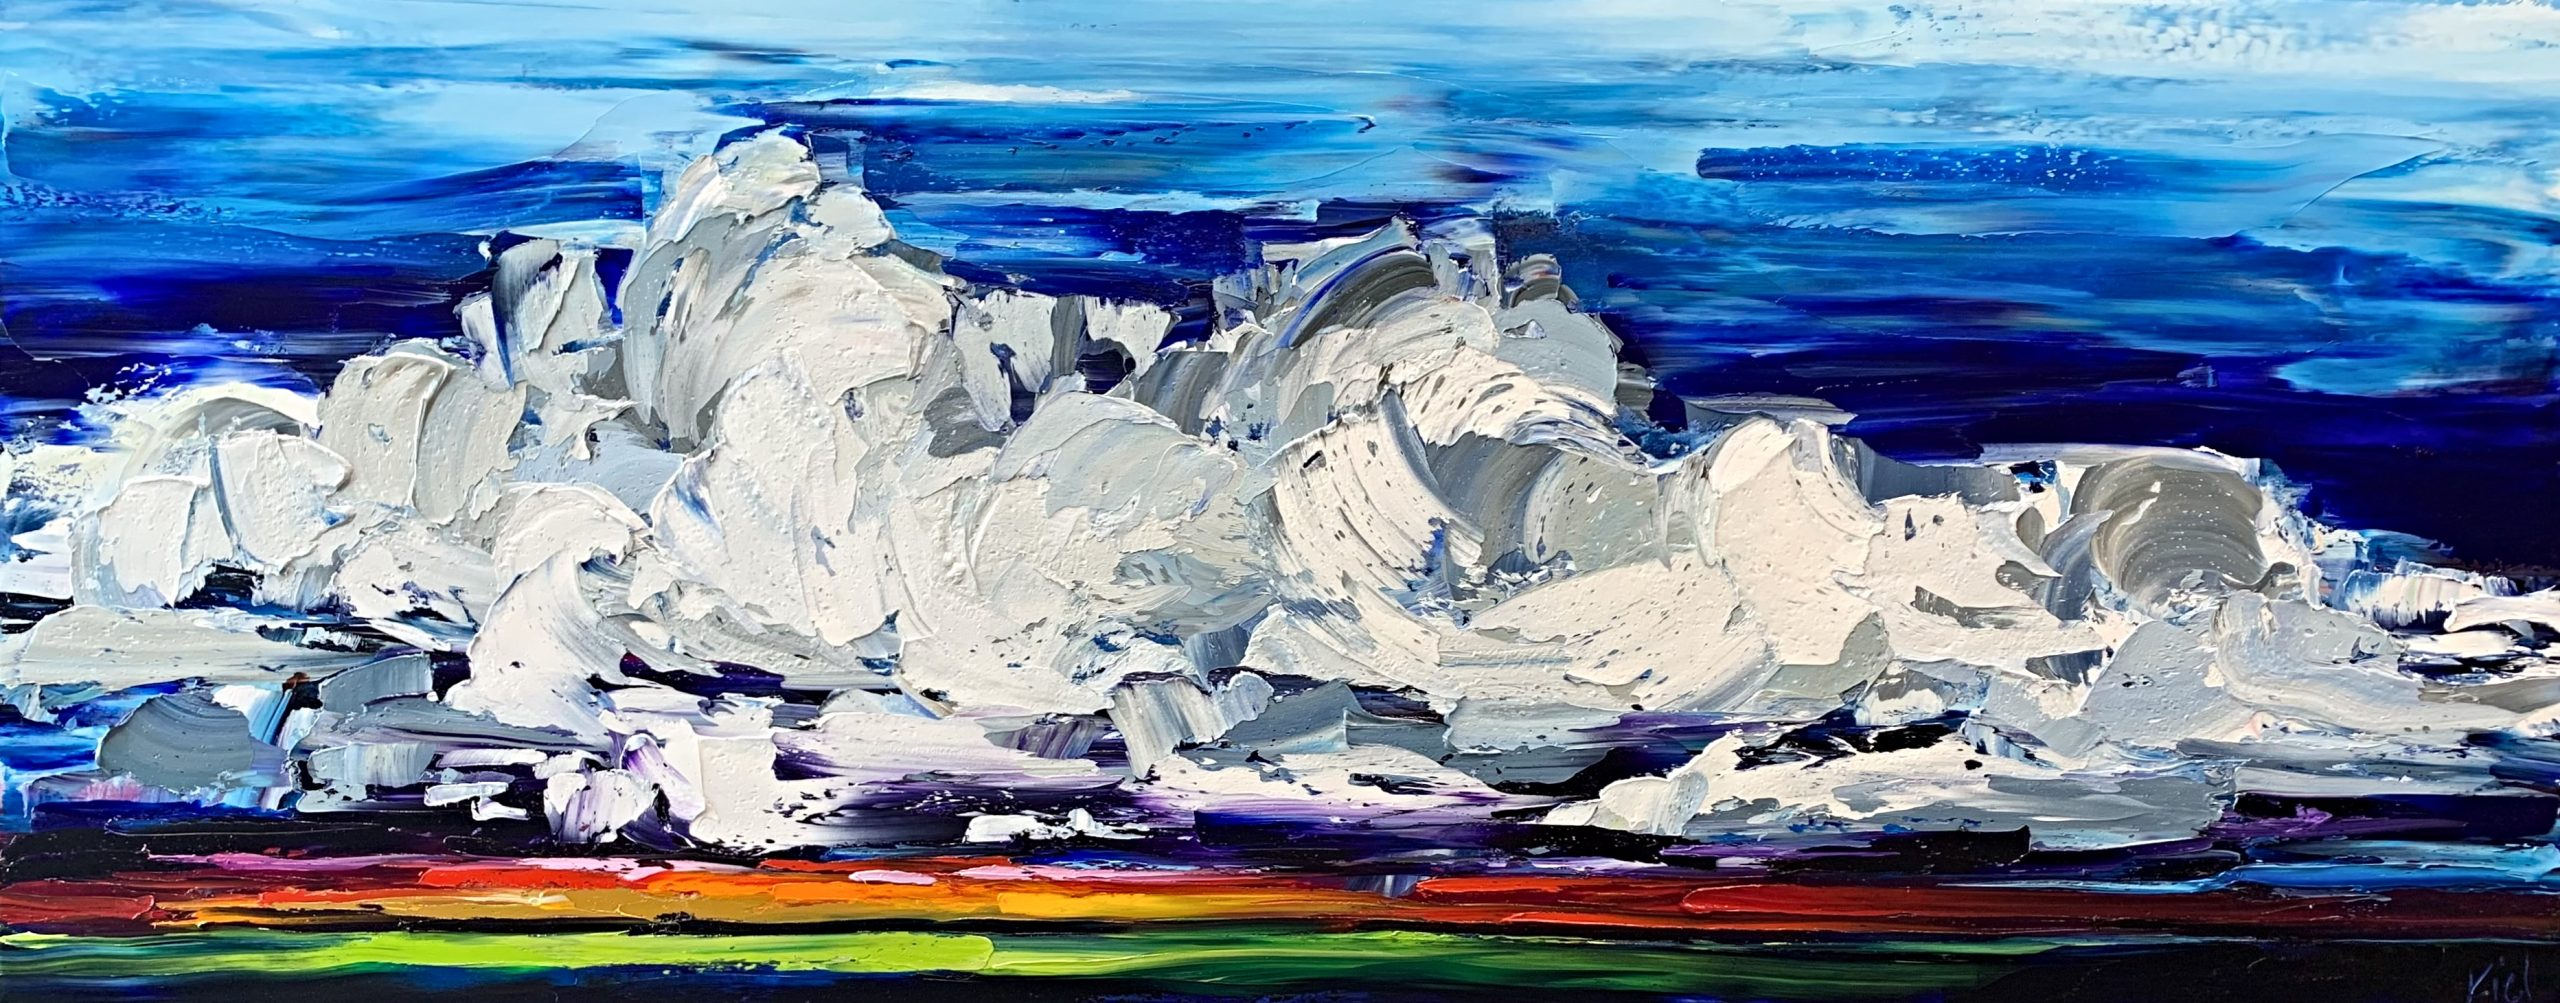 A Change in Weather Might do you Good, landscape painting by Kimberly Kiel | Effusion Art Gallery + Cast Glass Studio, Invermere BC